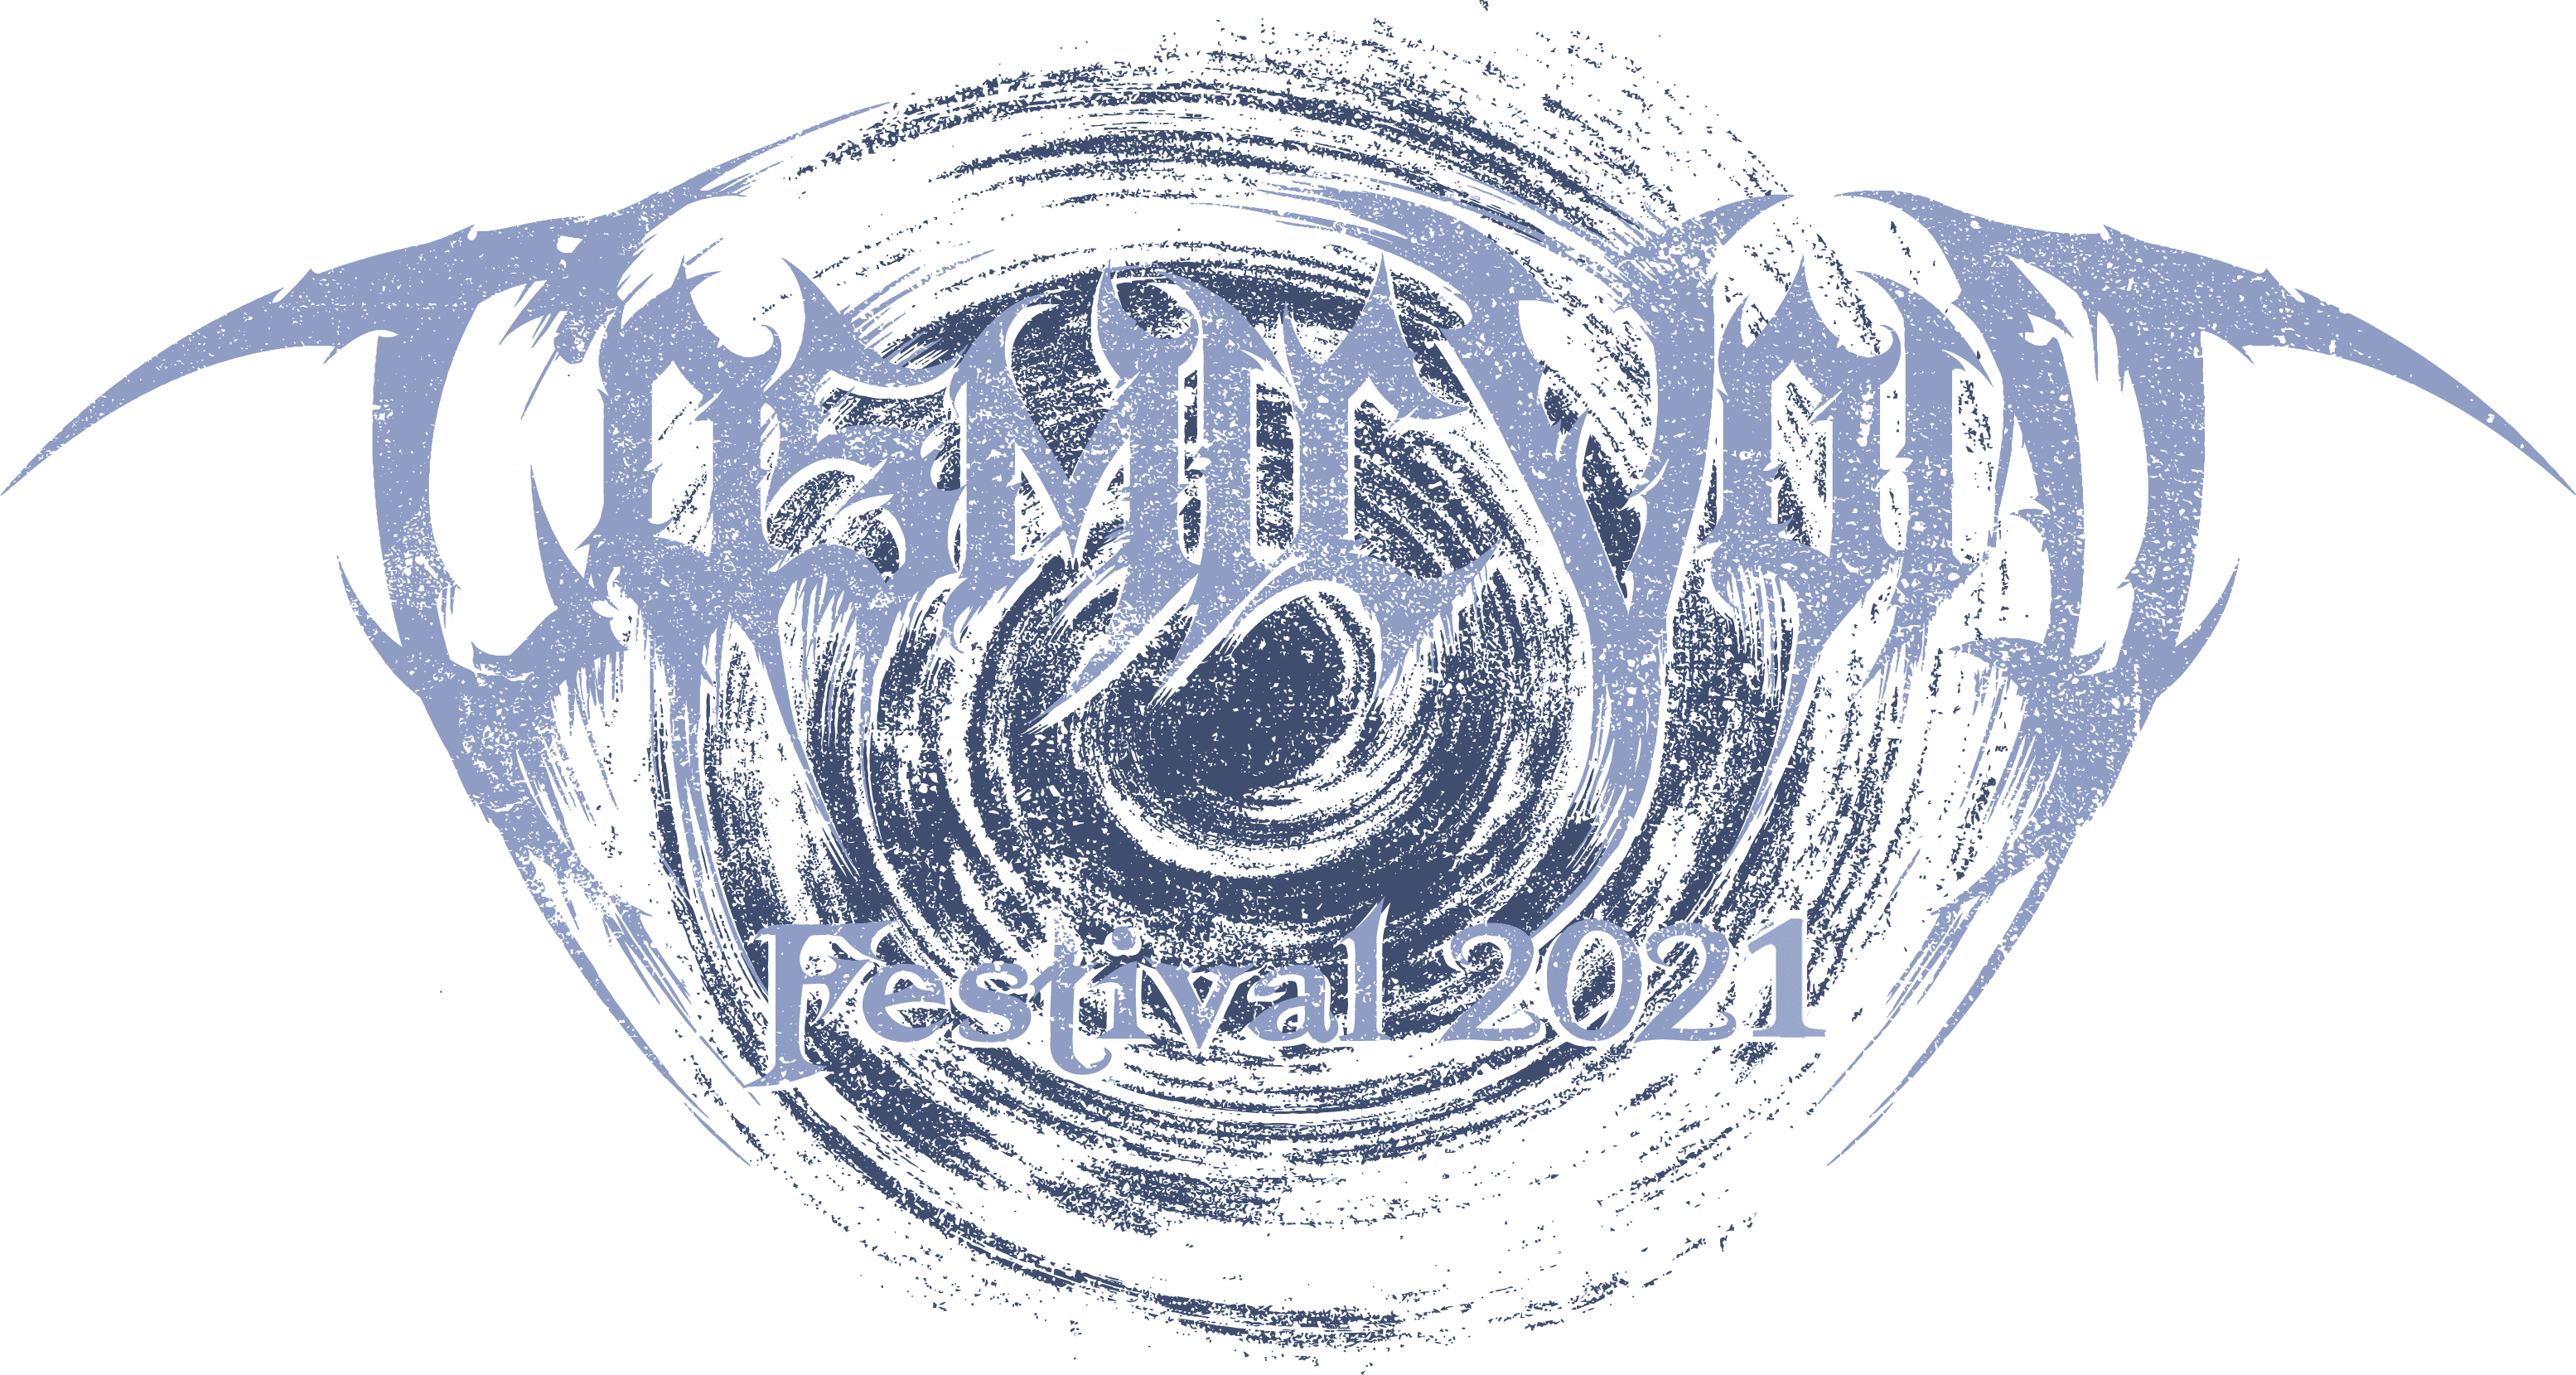 Cosmic Void Festival | Black Metal Festival in London (UK)